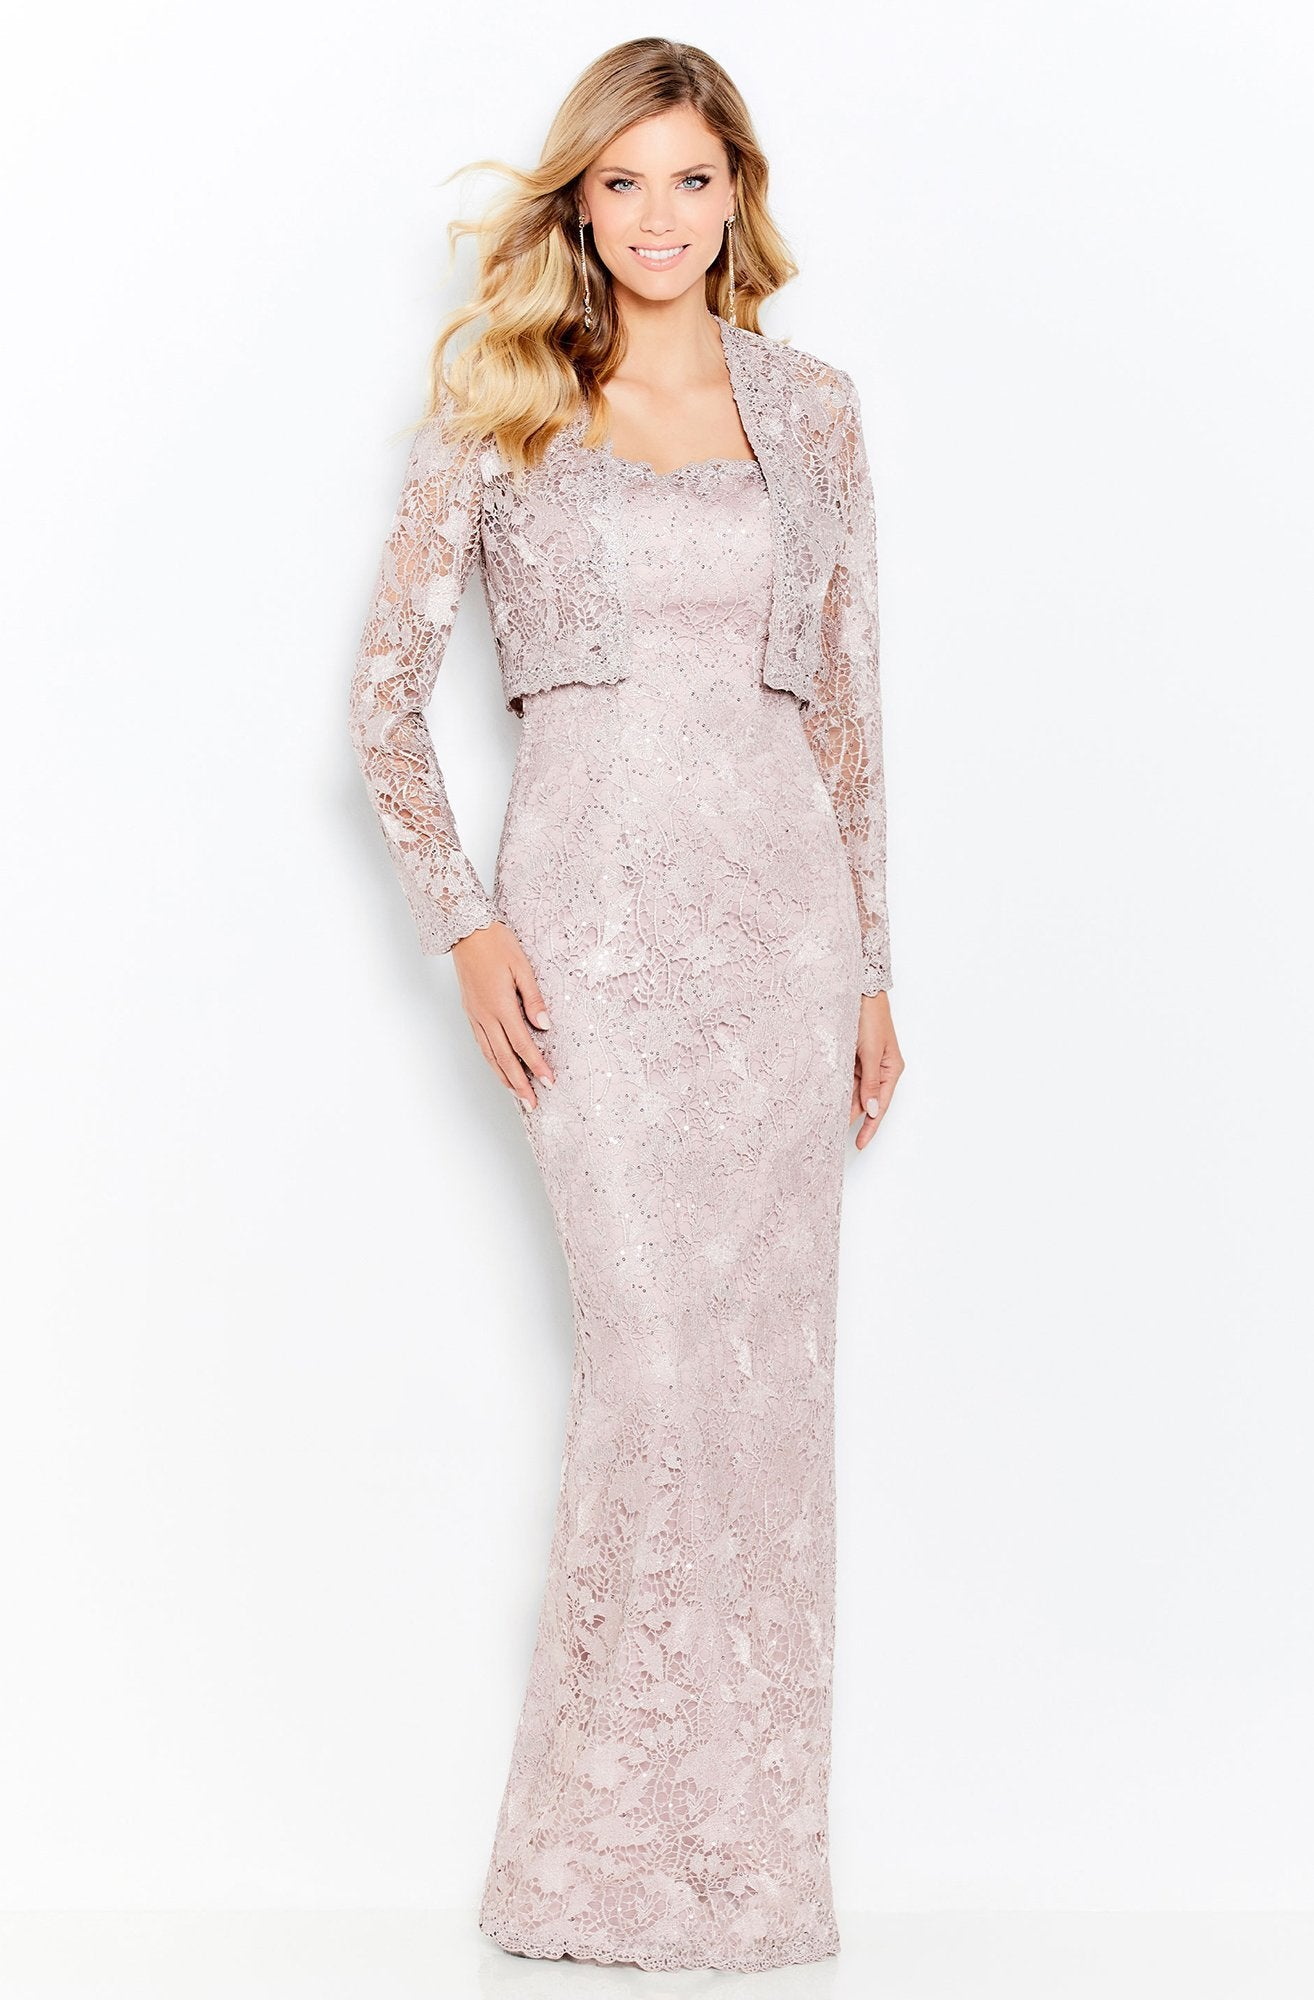 Mon Cheri - Lace Sheath Evening Dress 120602 In Pink